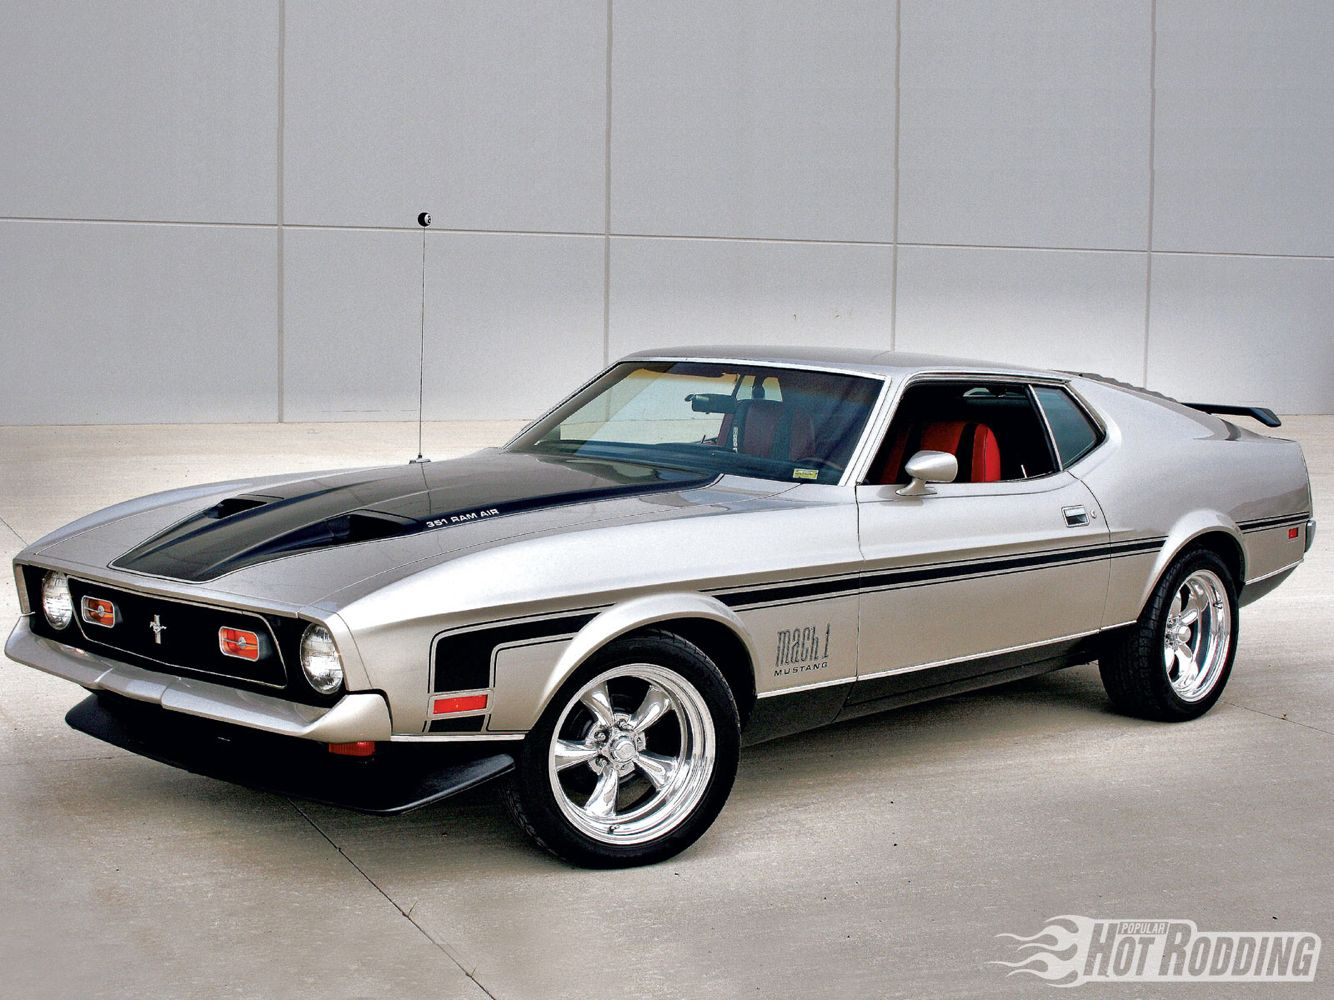 The first Eléonore ! Ford mustang Mach 1 1973